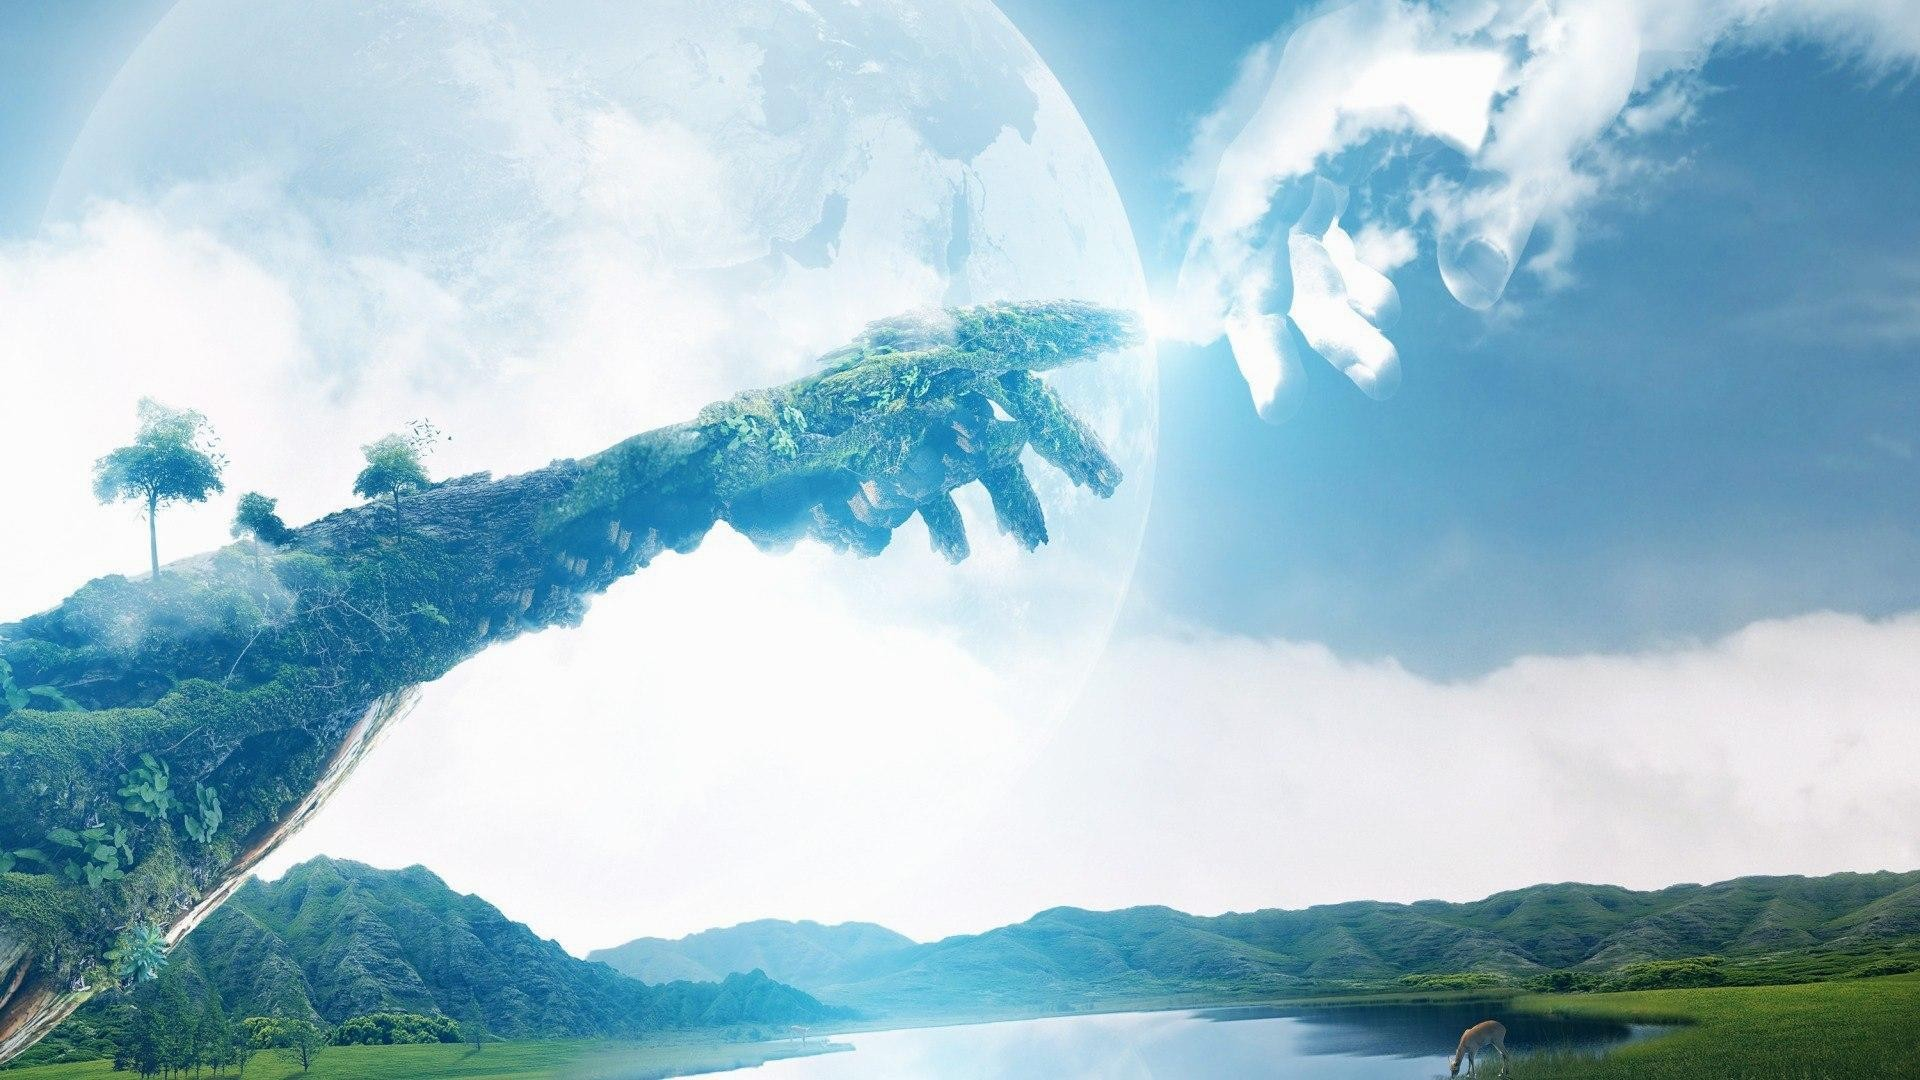 Heaven wallpaper ·① Download free cool HD backgrounds for desktop and mobile devices in any ...